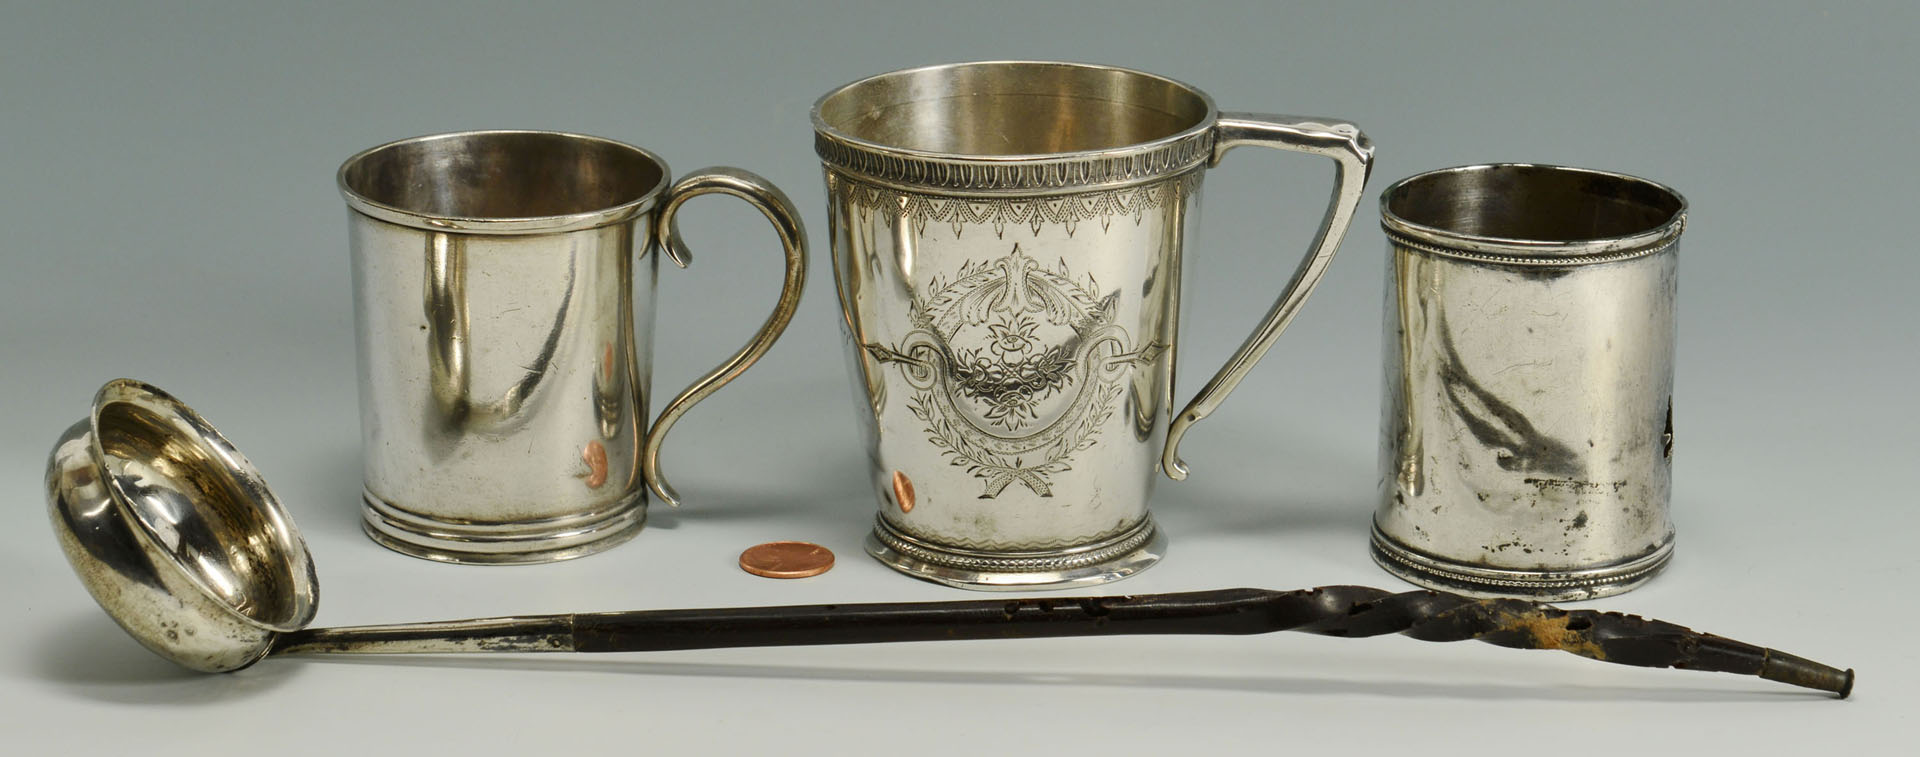 Lot 290: 3 Coin Silver Cups and Silver Metal/Horn Ladle